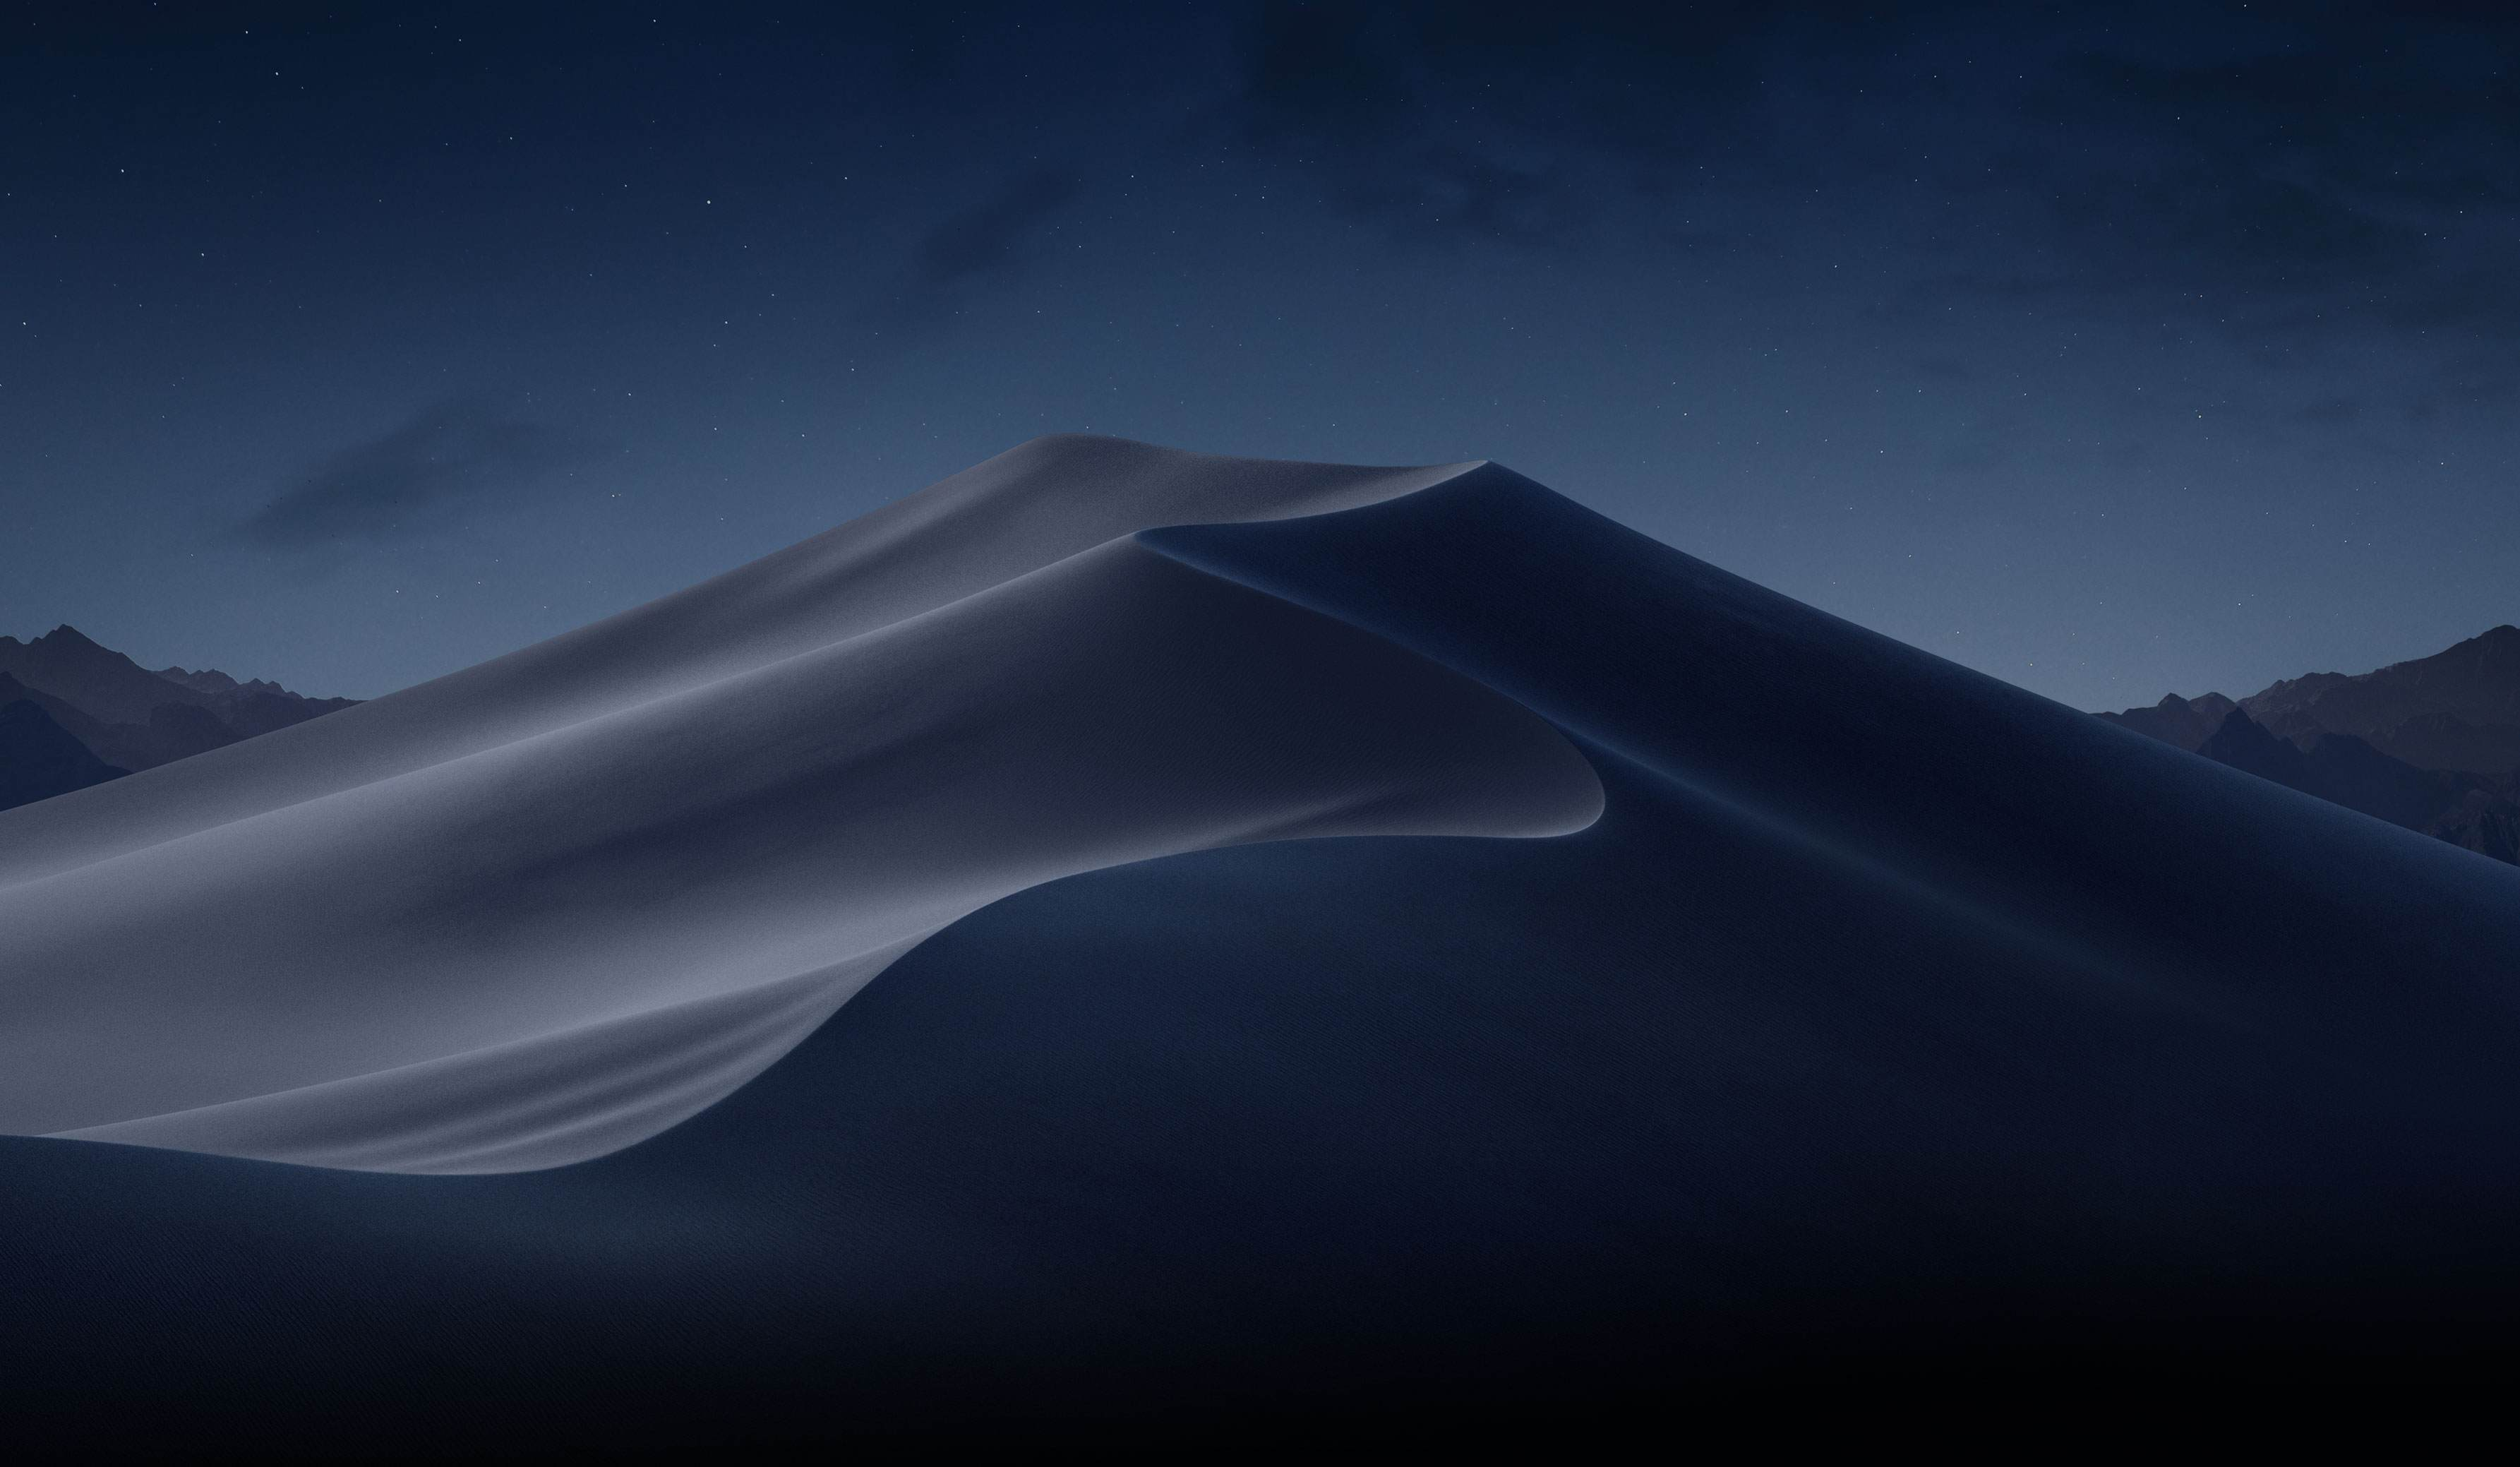 Wallpaper oficial do macOS Mojave